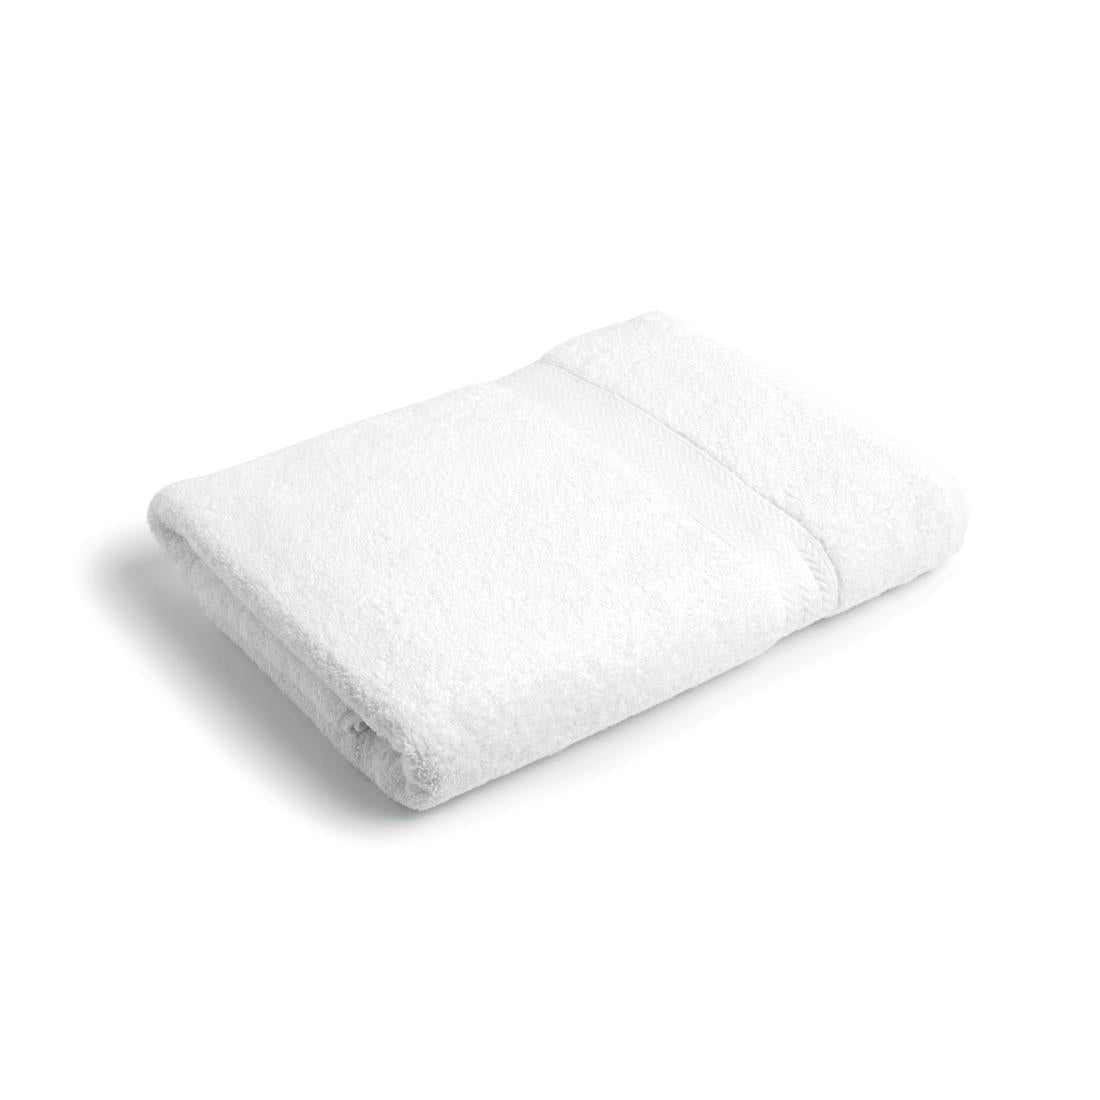 Which one is the best kitchen cloth? Comparison of cotton, microfiber, and wood fiber cloth.